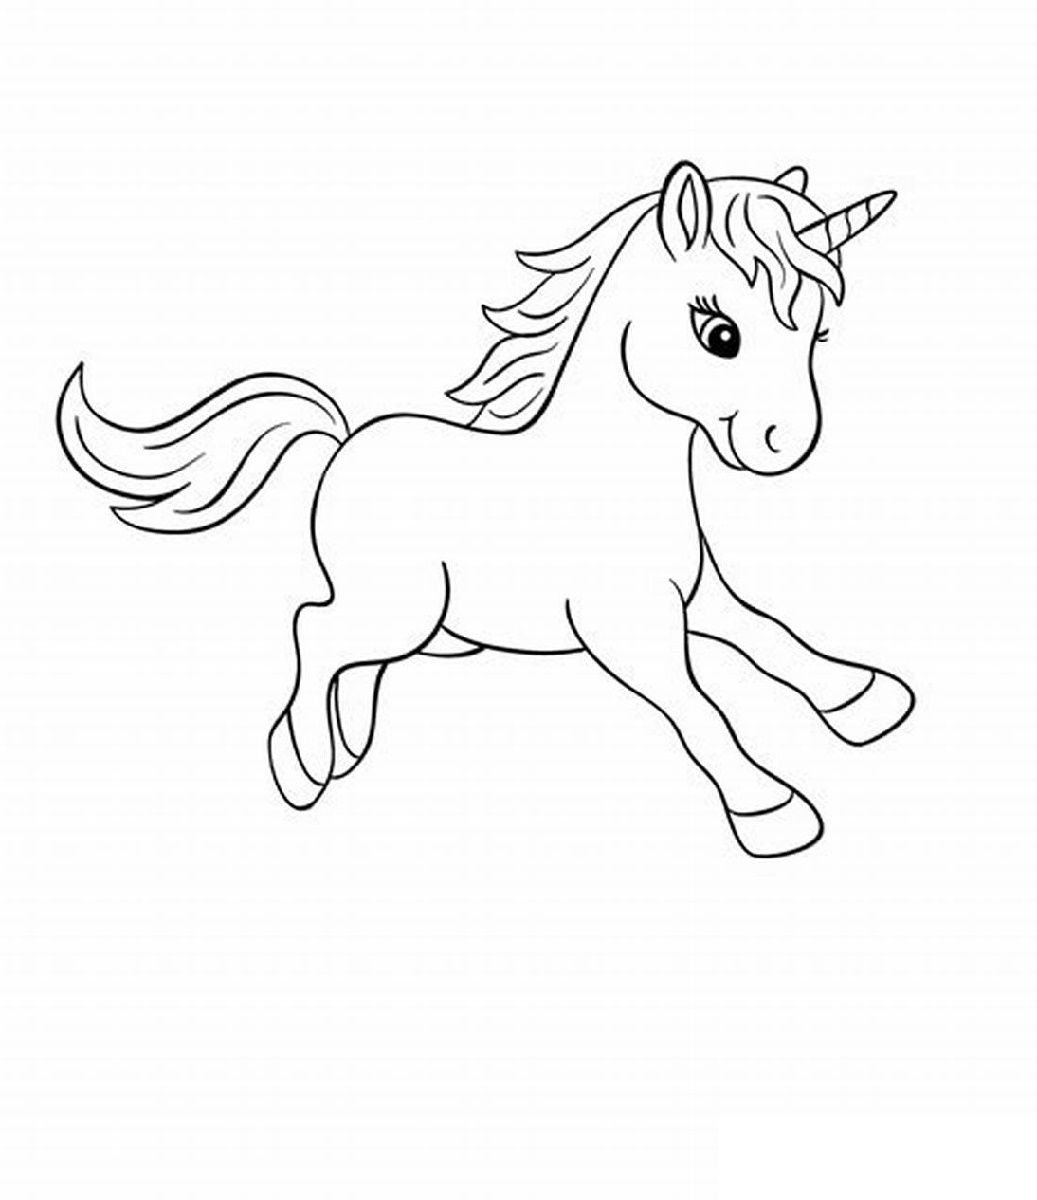 Baby Unicorn Coloring Pages Unicorn Coloring Pages Coloring